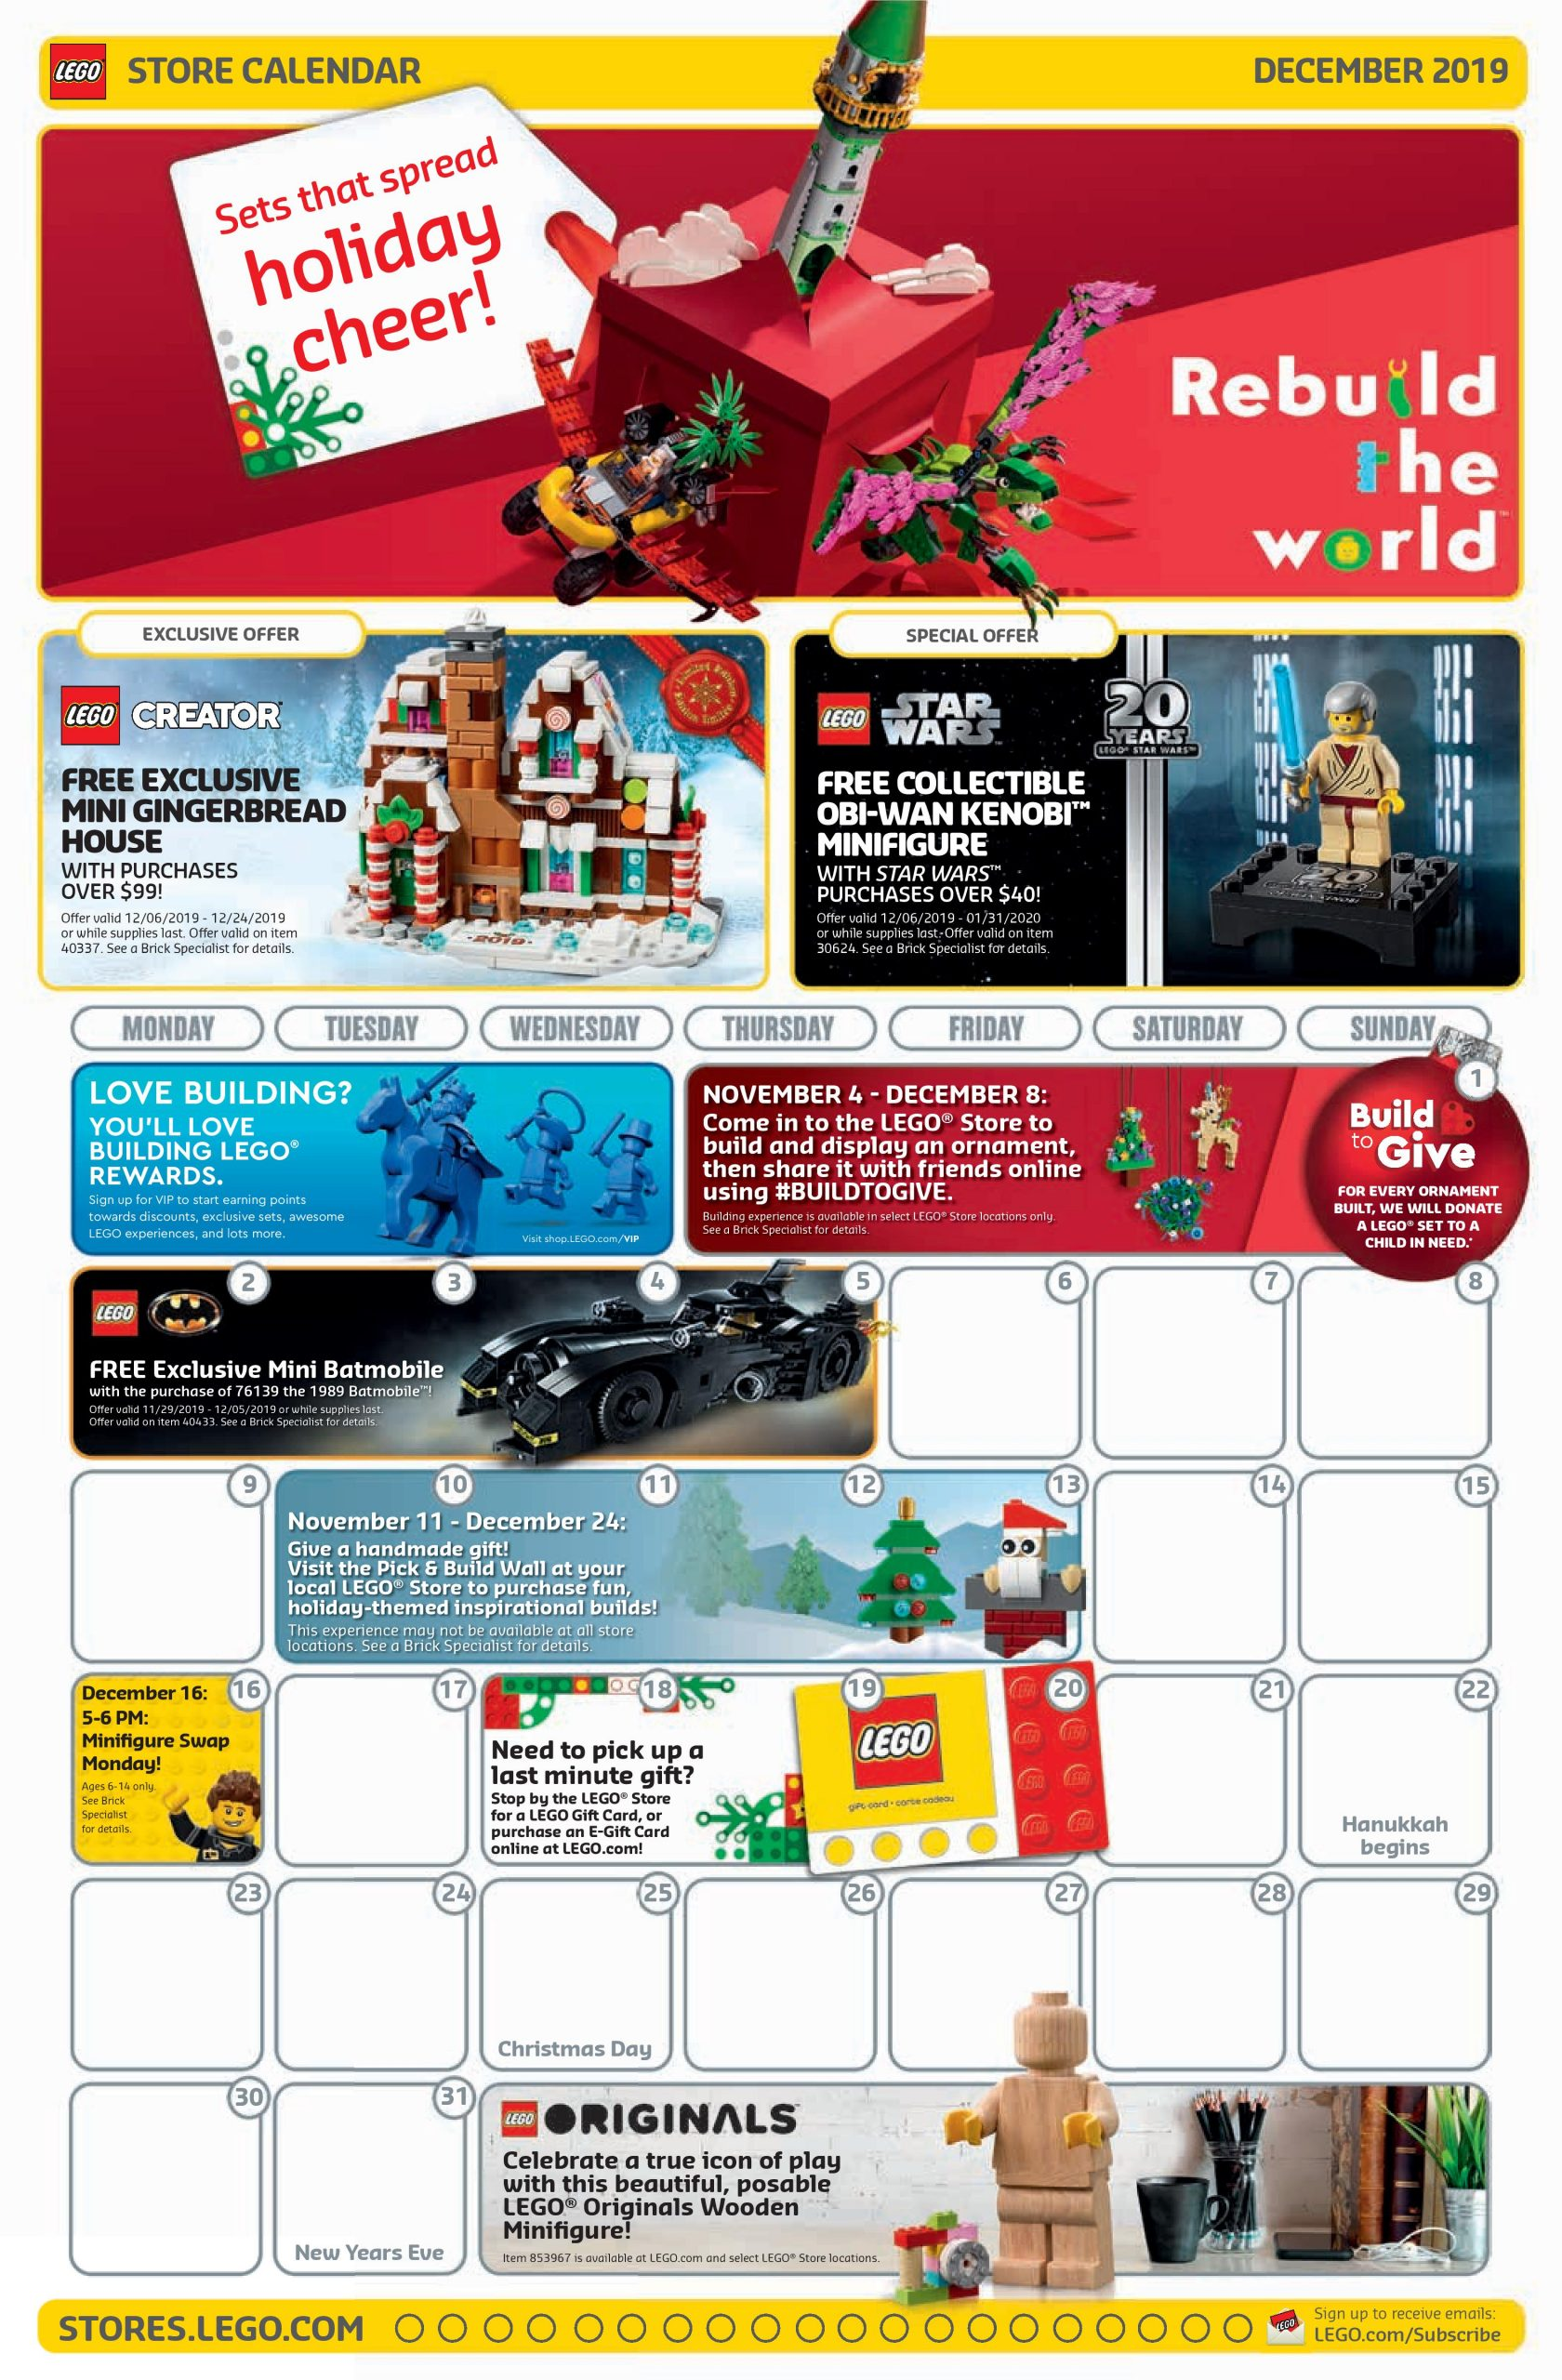 Lego Christmas Promotion 2020 LEGO December 2019 Store Calendar Promotions & Events   The Brick Fan